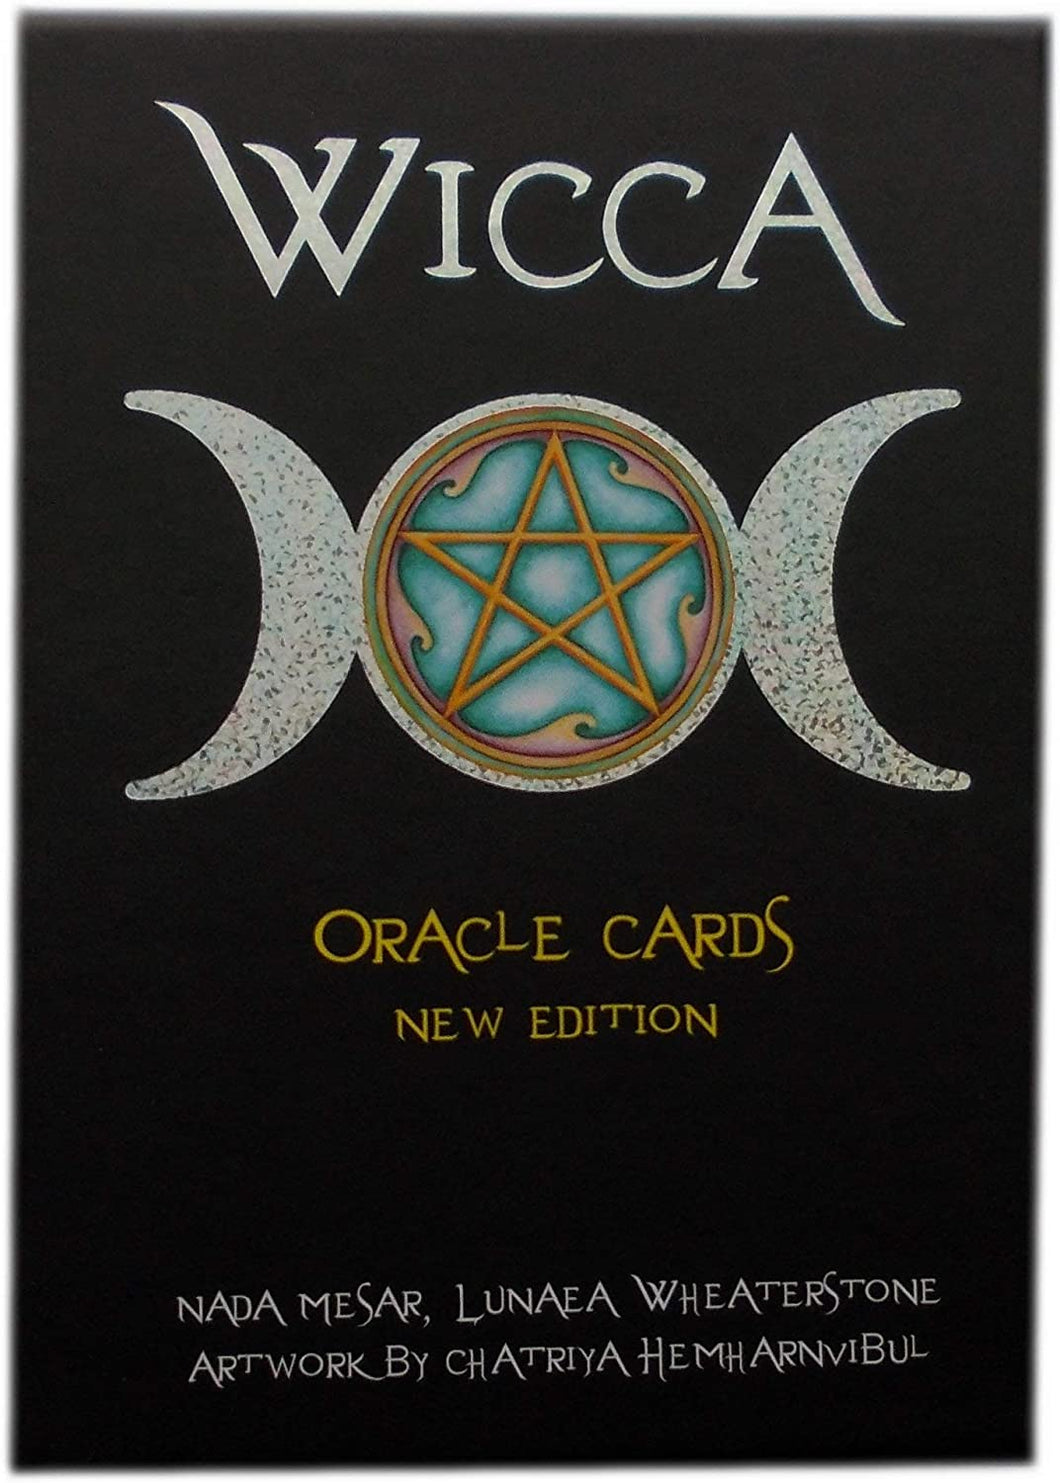 Wicca Oracle card box cover, featuring a pentacle inside a triple moon symbol